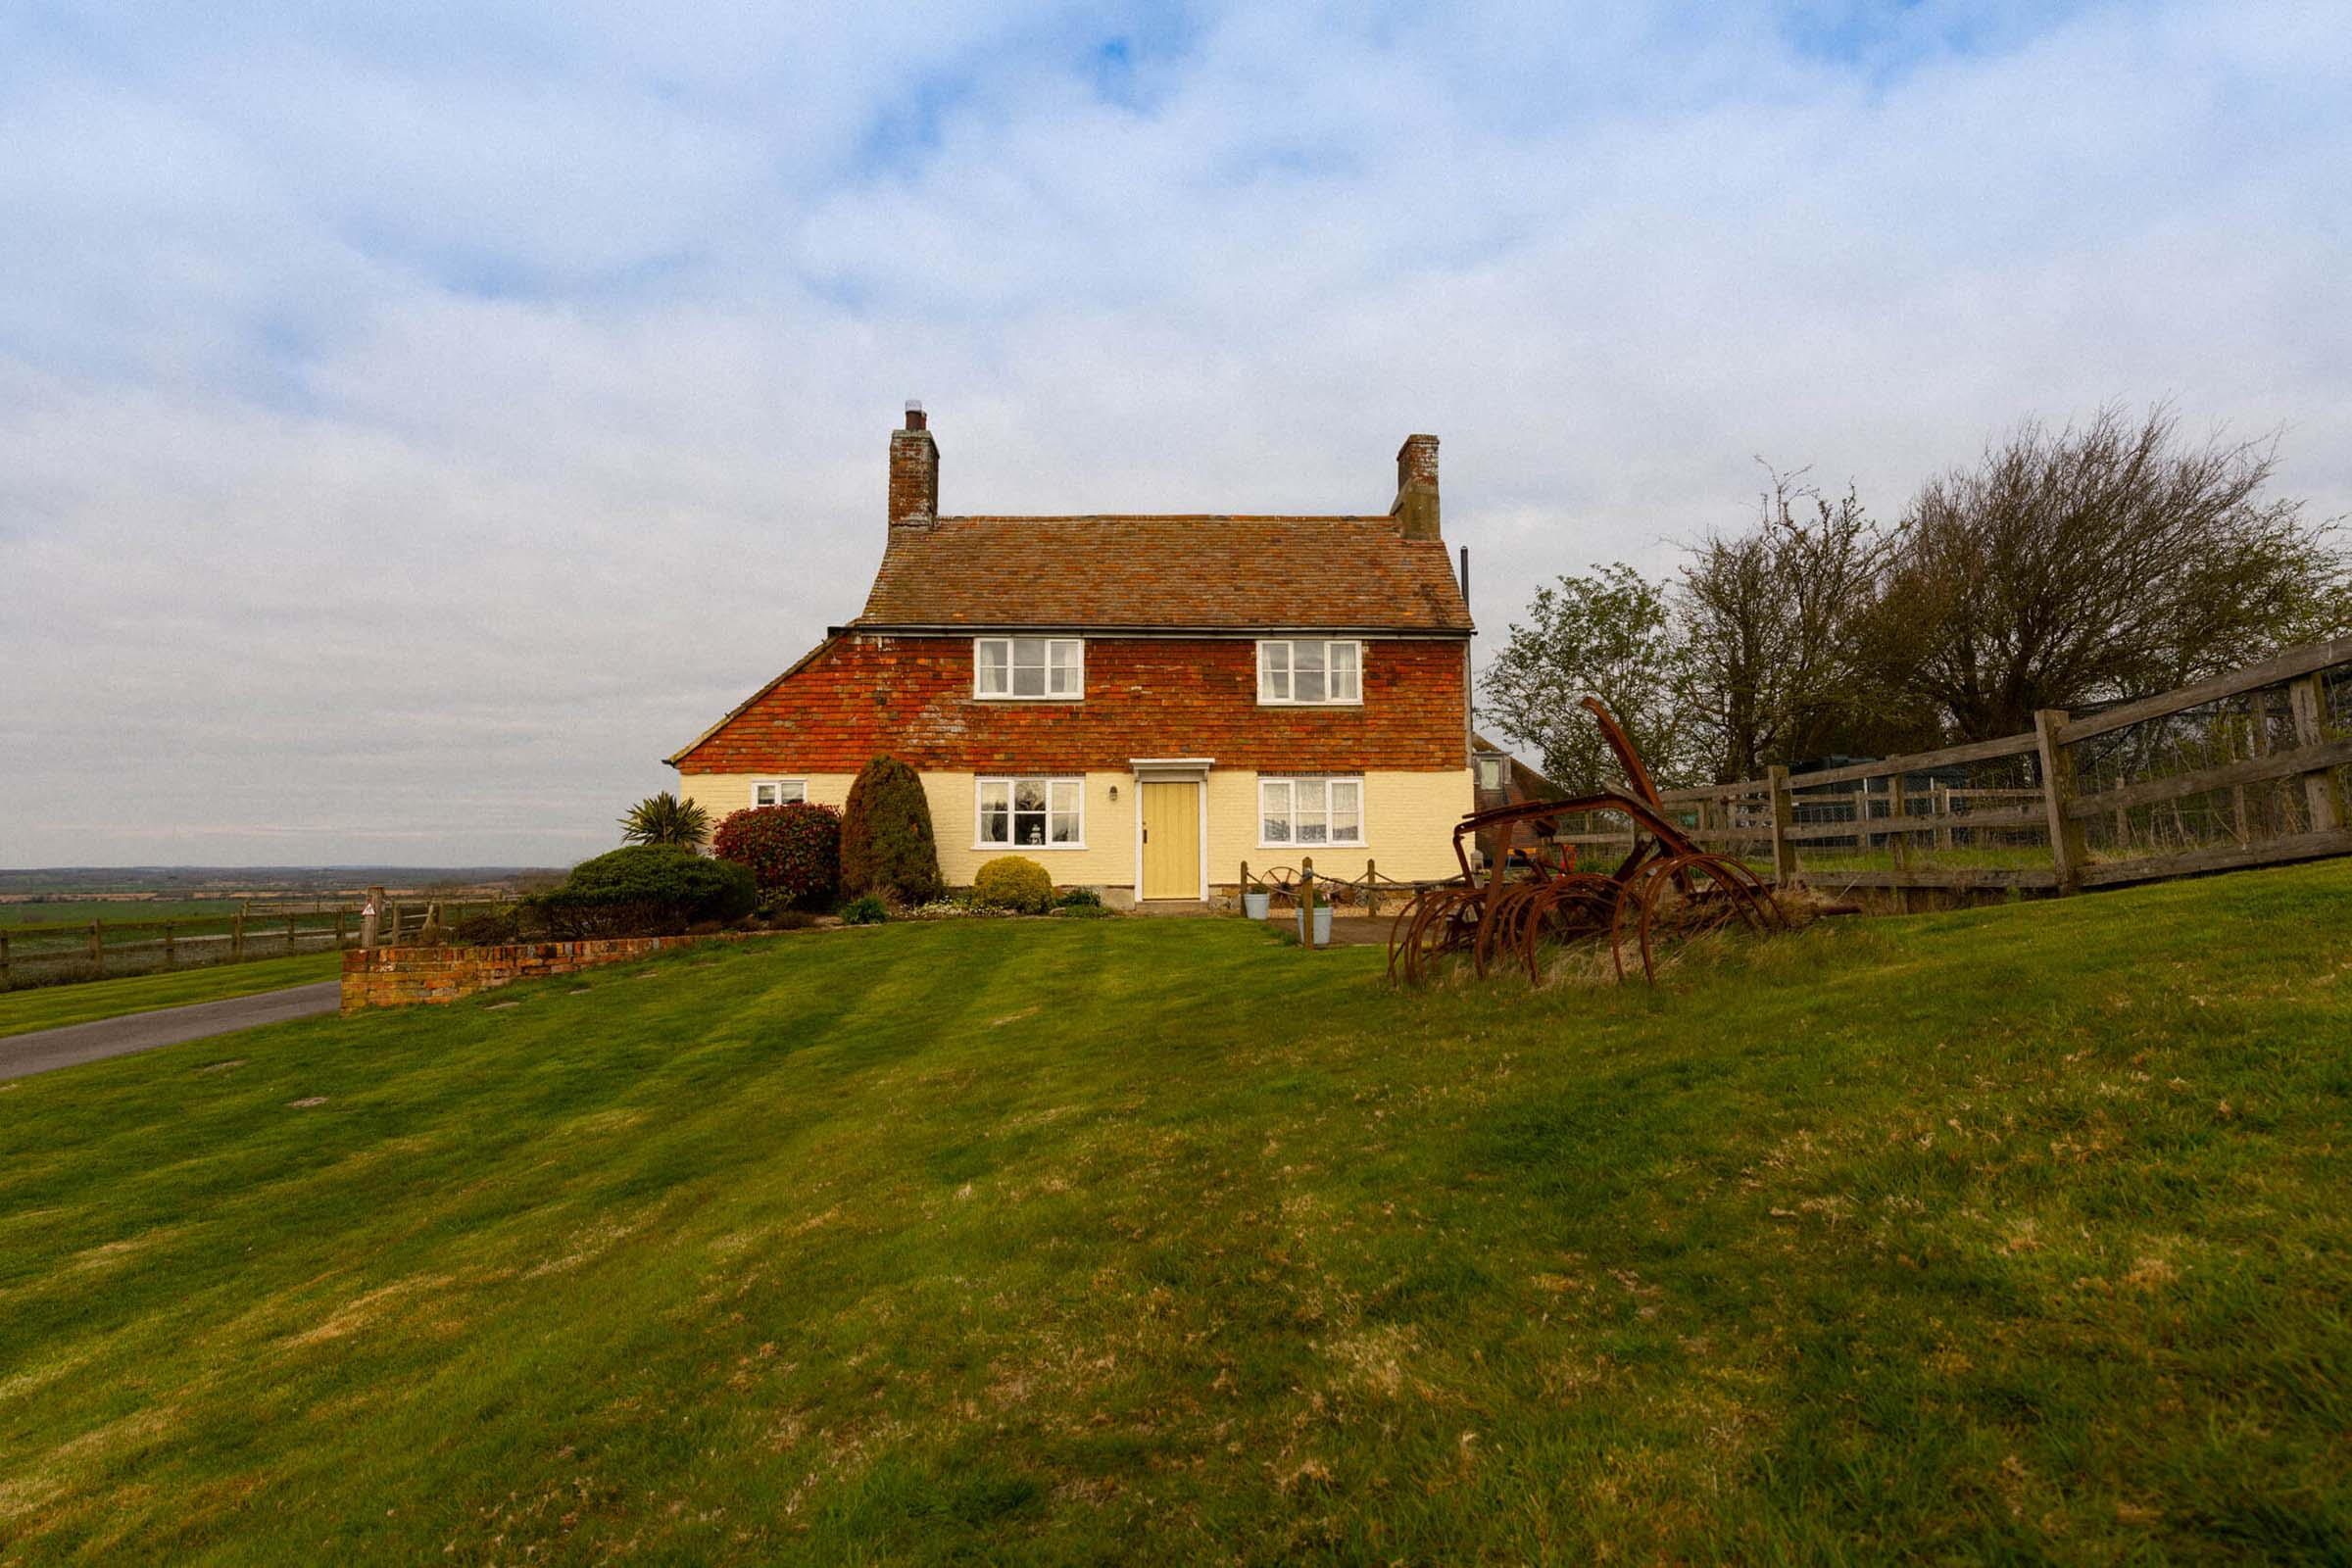 Looking at Coldharbour Cottage face on